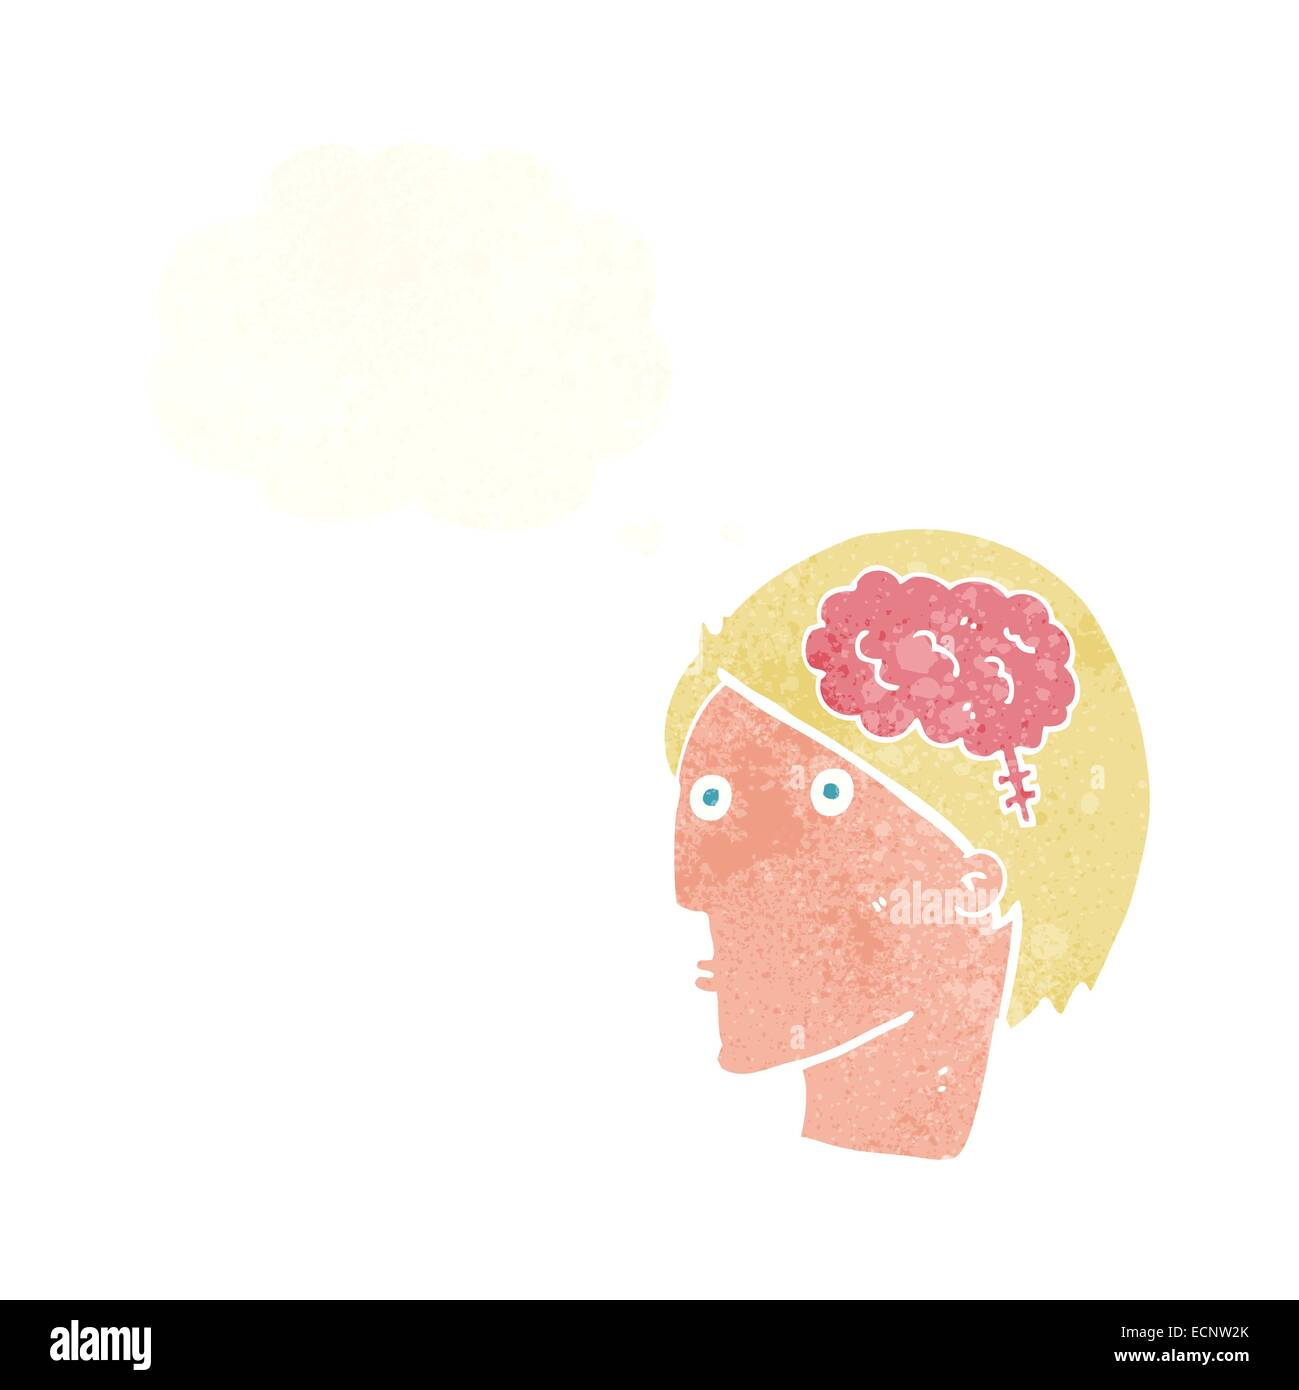 Cartoon man with brain symbol with thought bubble stock vector art cartoon man with brain symbol with thought bubble biocorpaavc Images